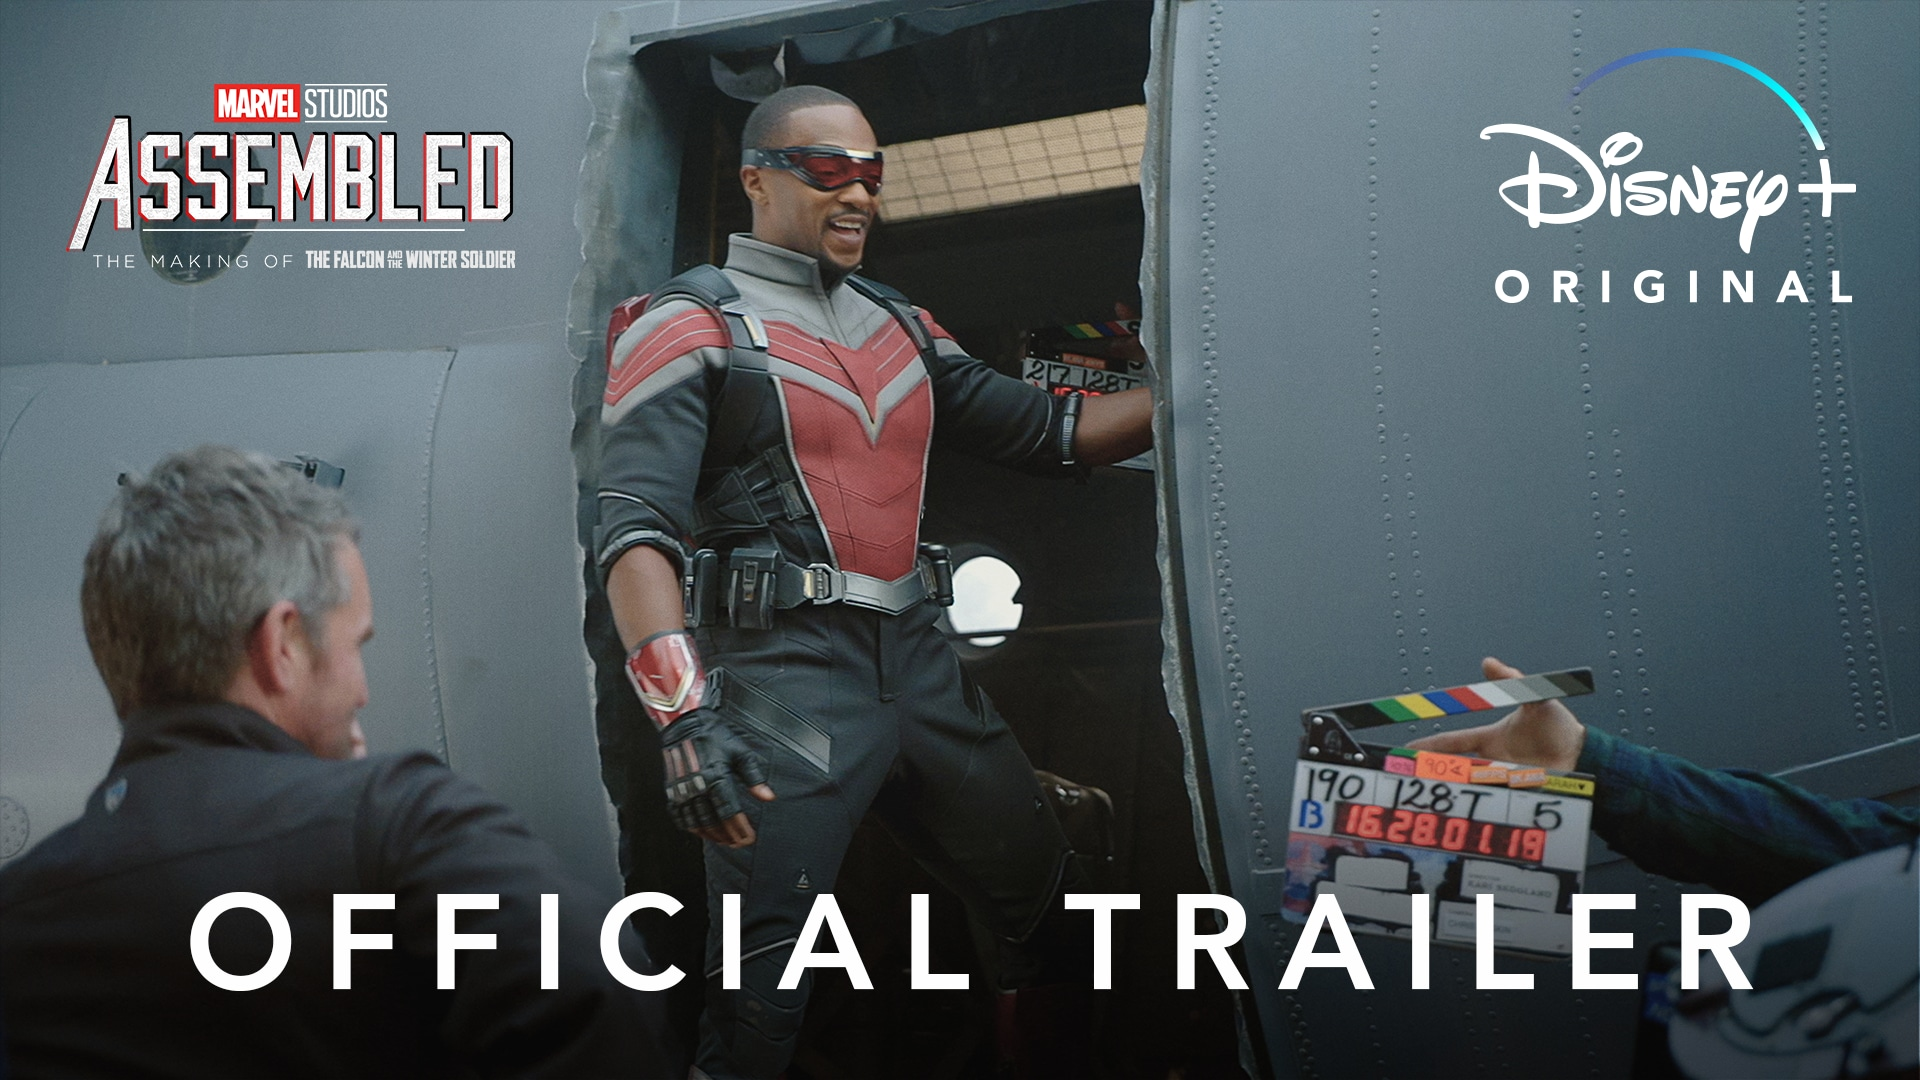 Marvel Studios Assembled: The Making of The Falcon and The Winter Soldier | Official Trailer | Disney+